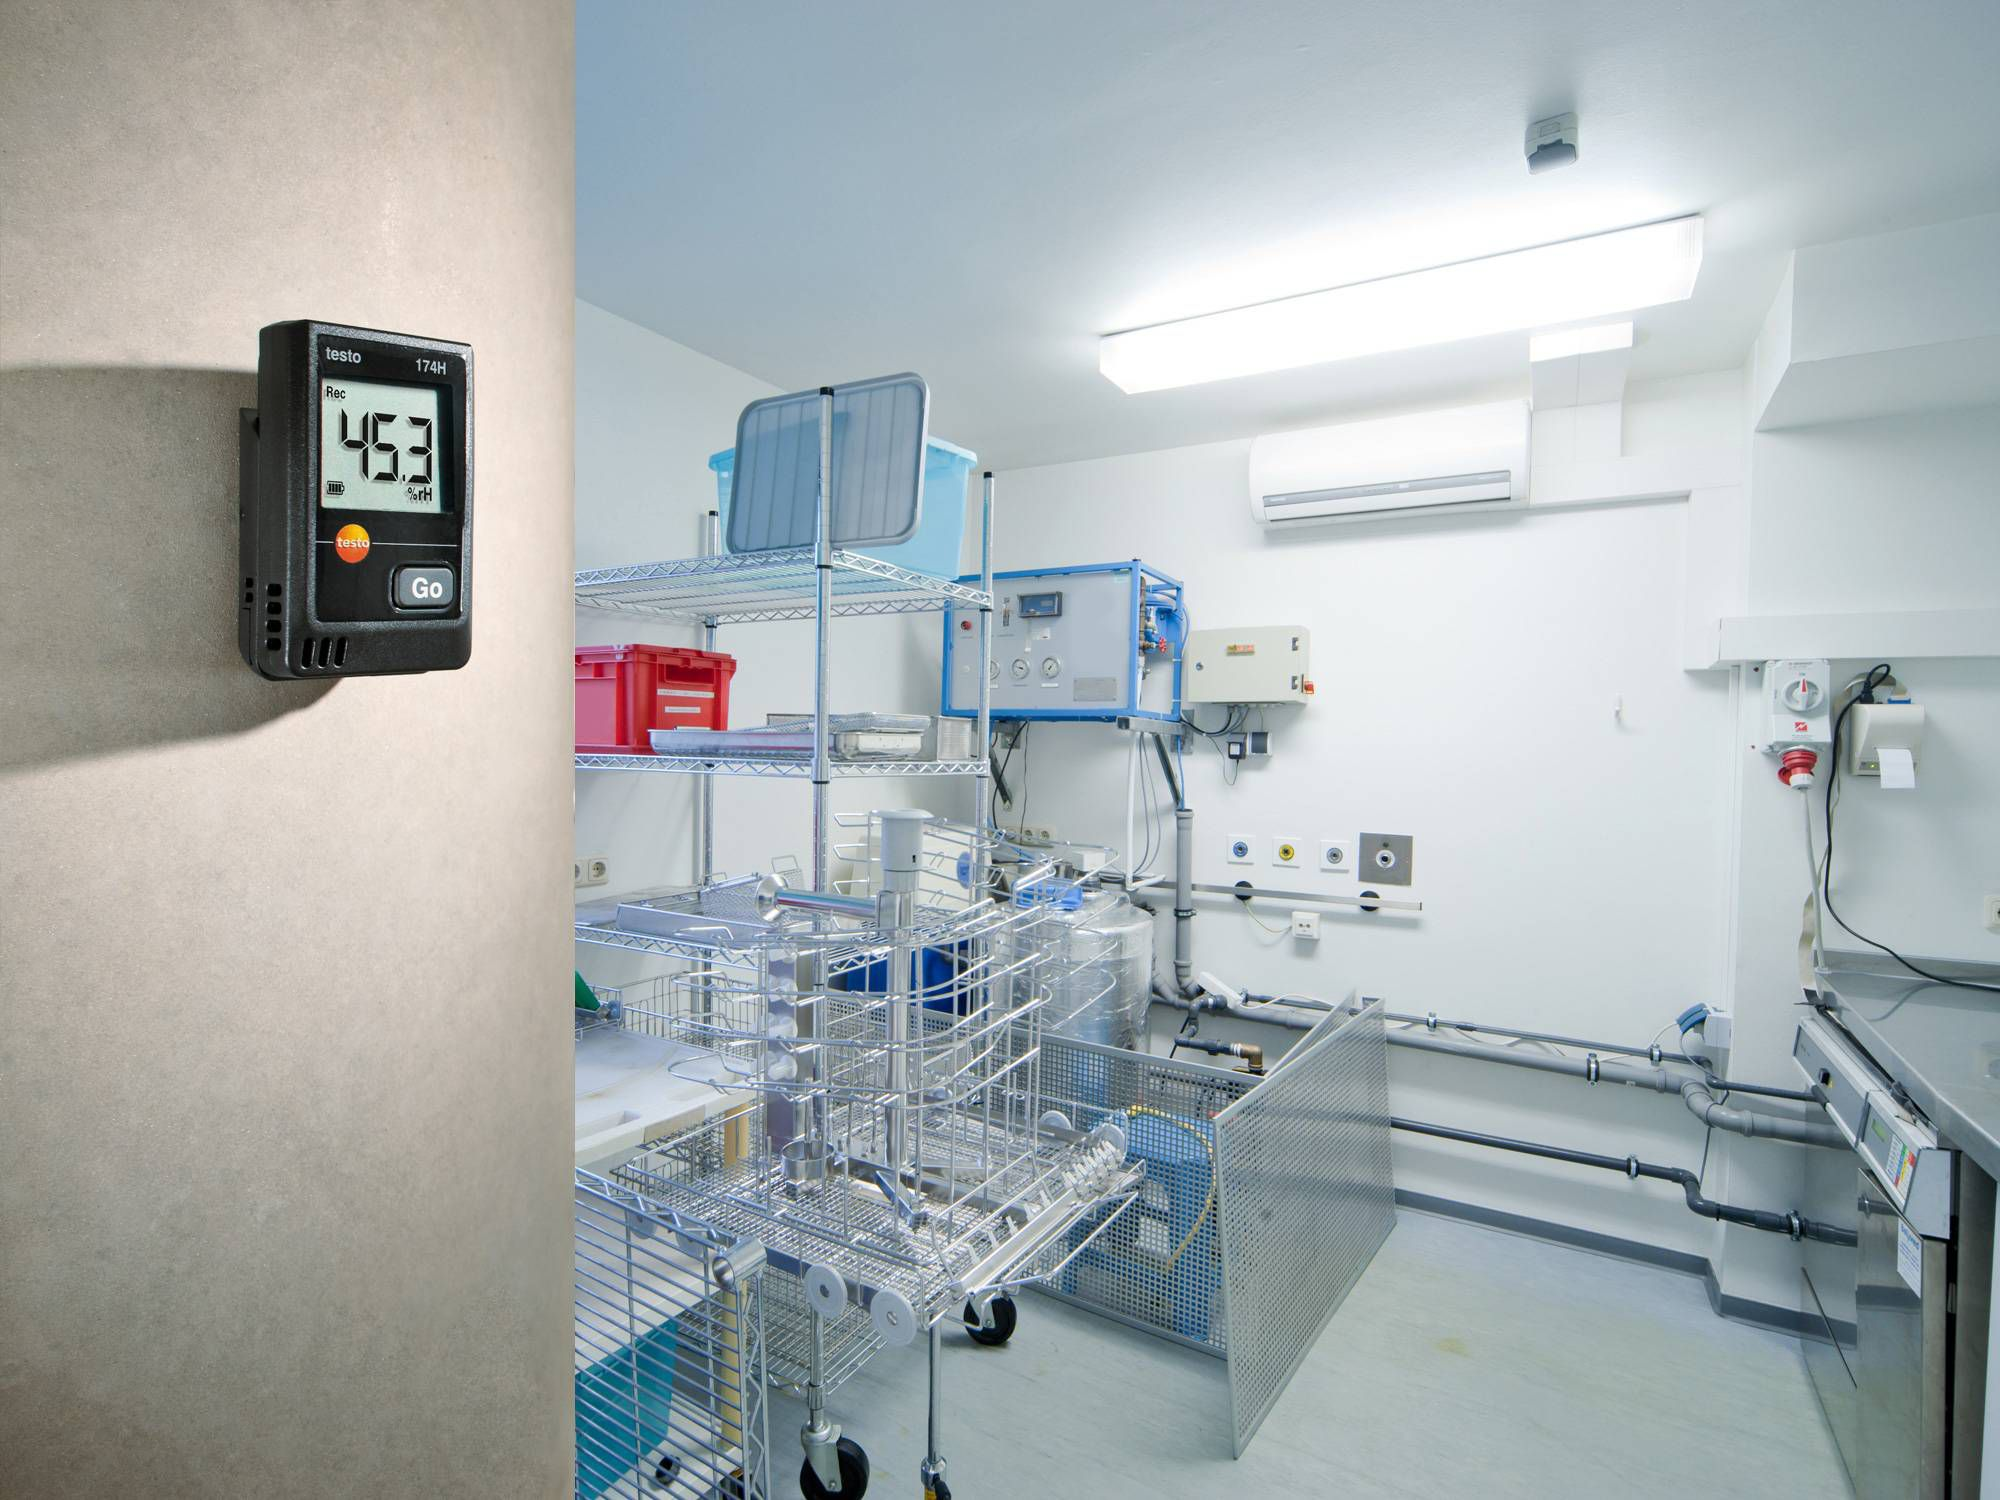 The testo 174 H data logger monitors a storage room in a hospital